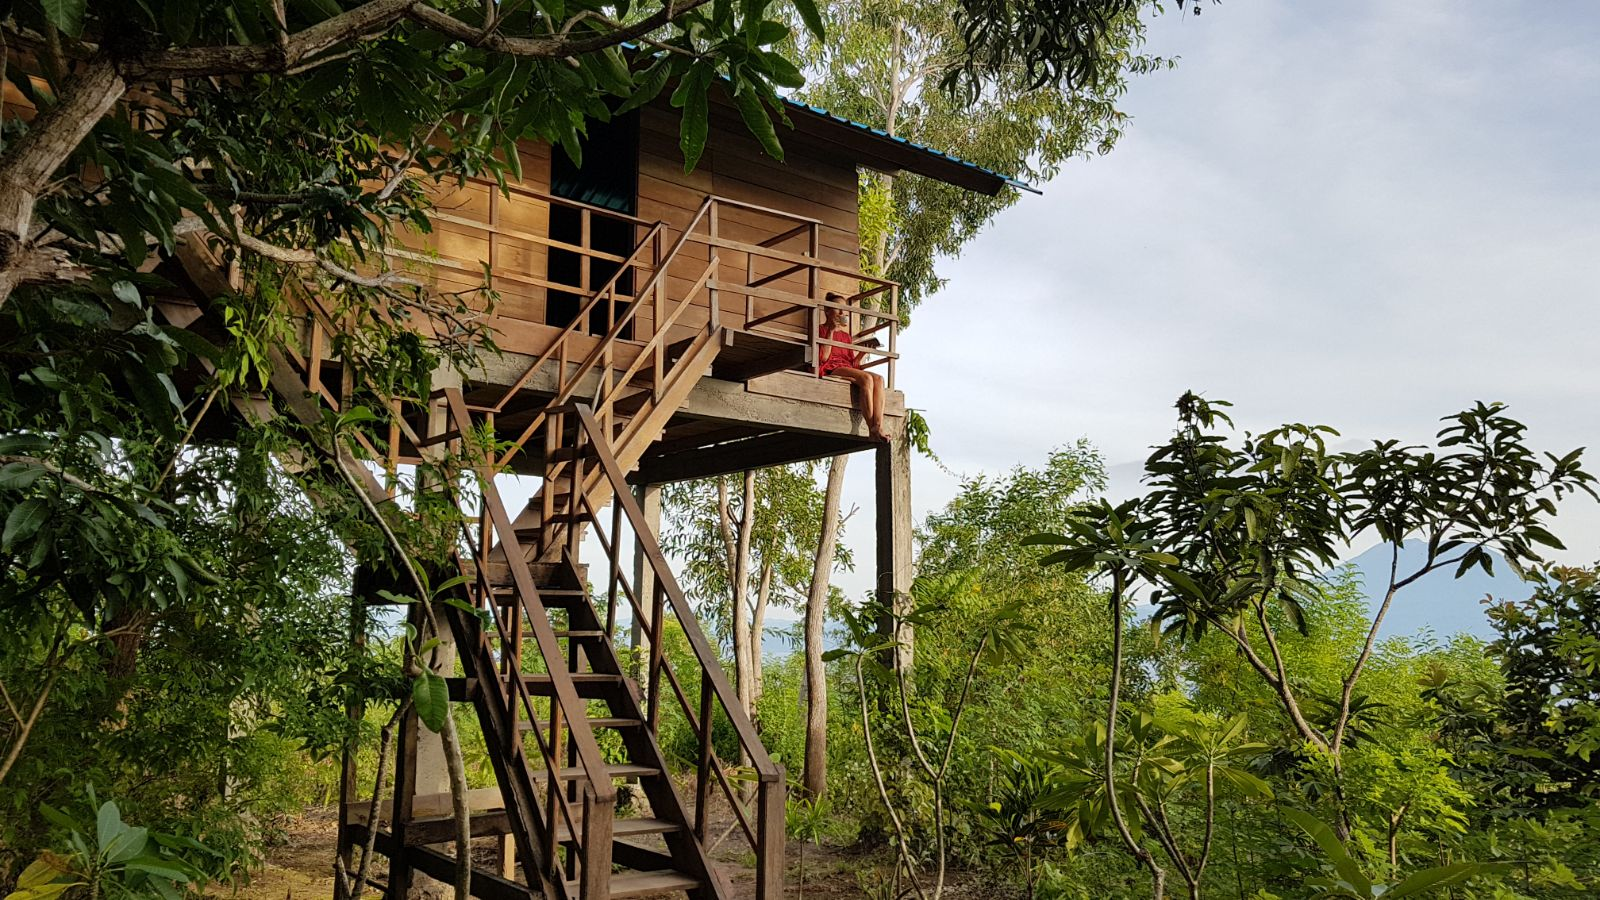 Nusa Penida hut in the jungle - amazing holiday accommodation Asia